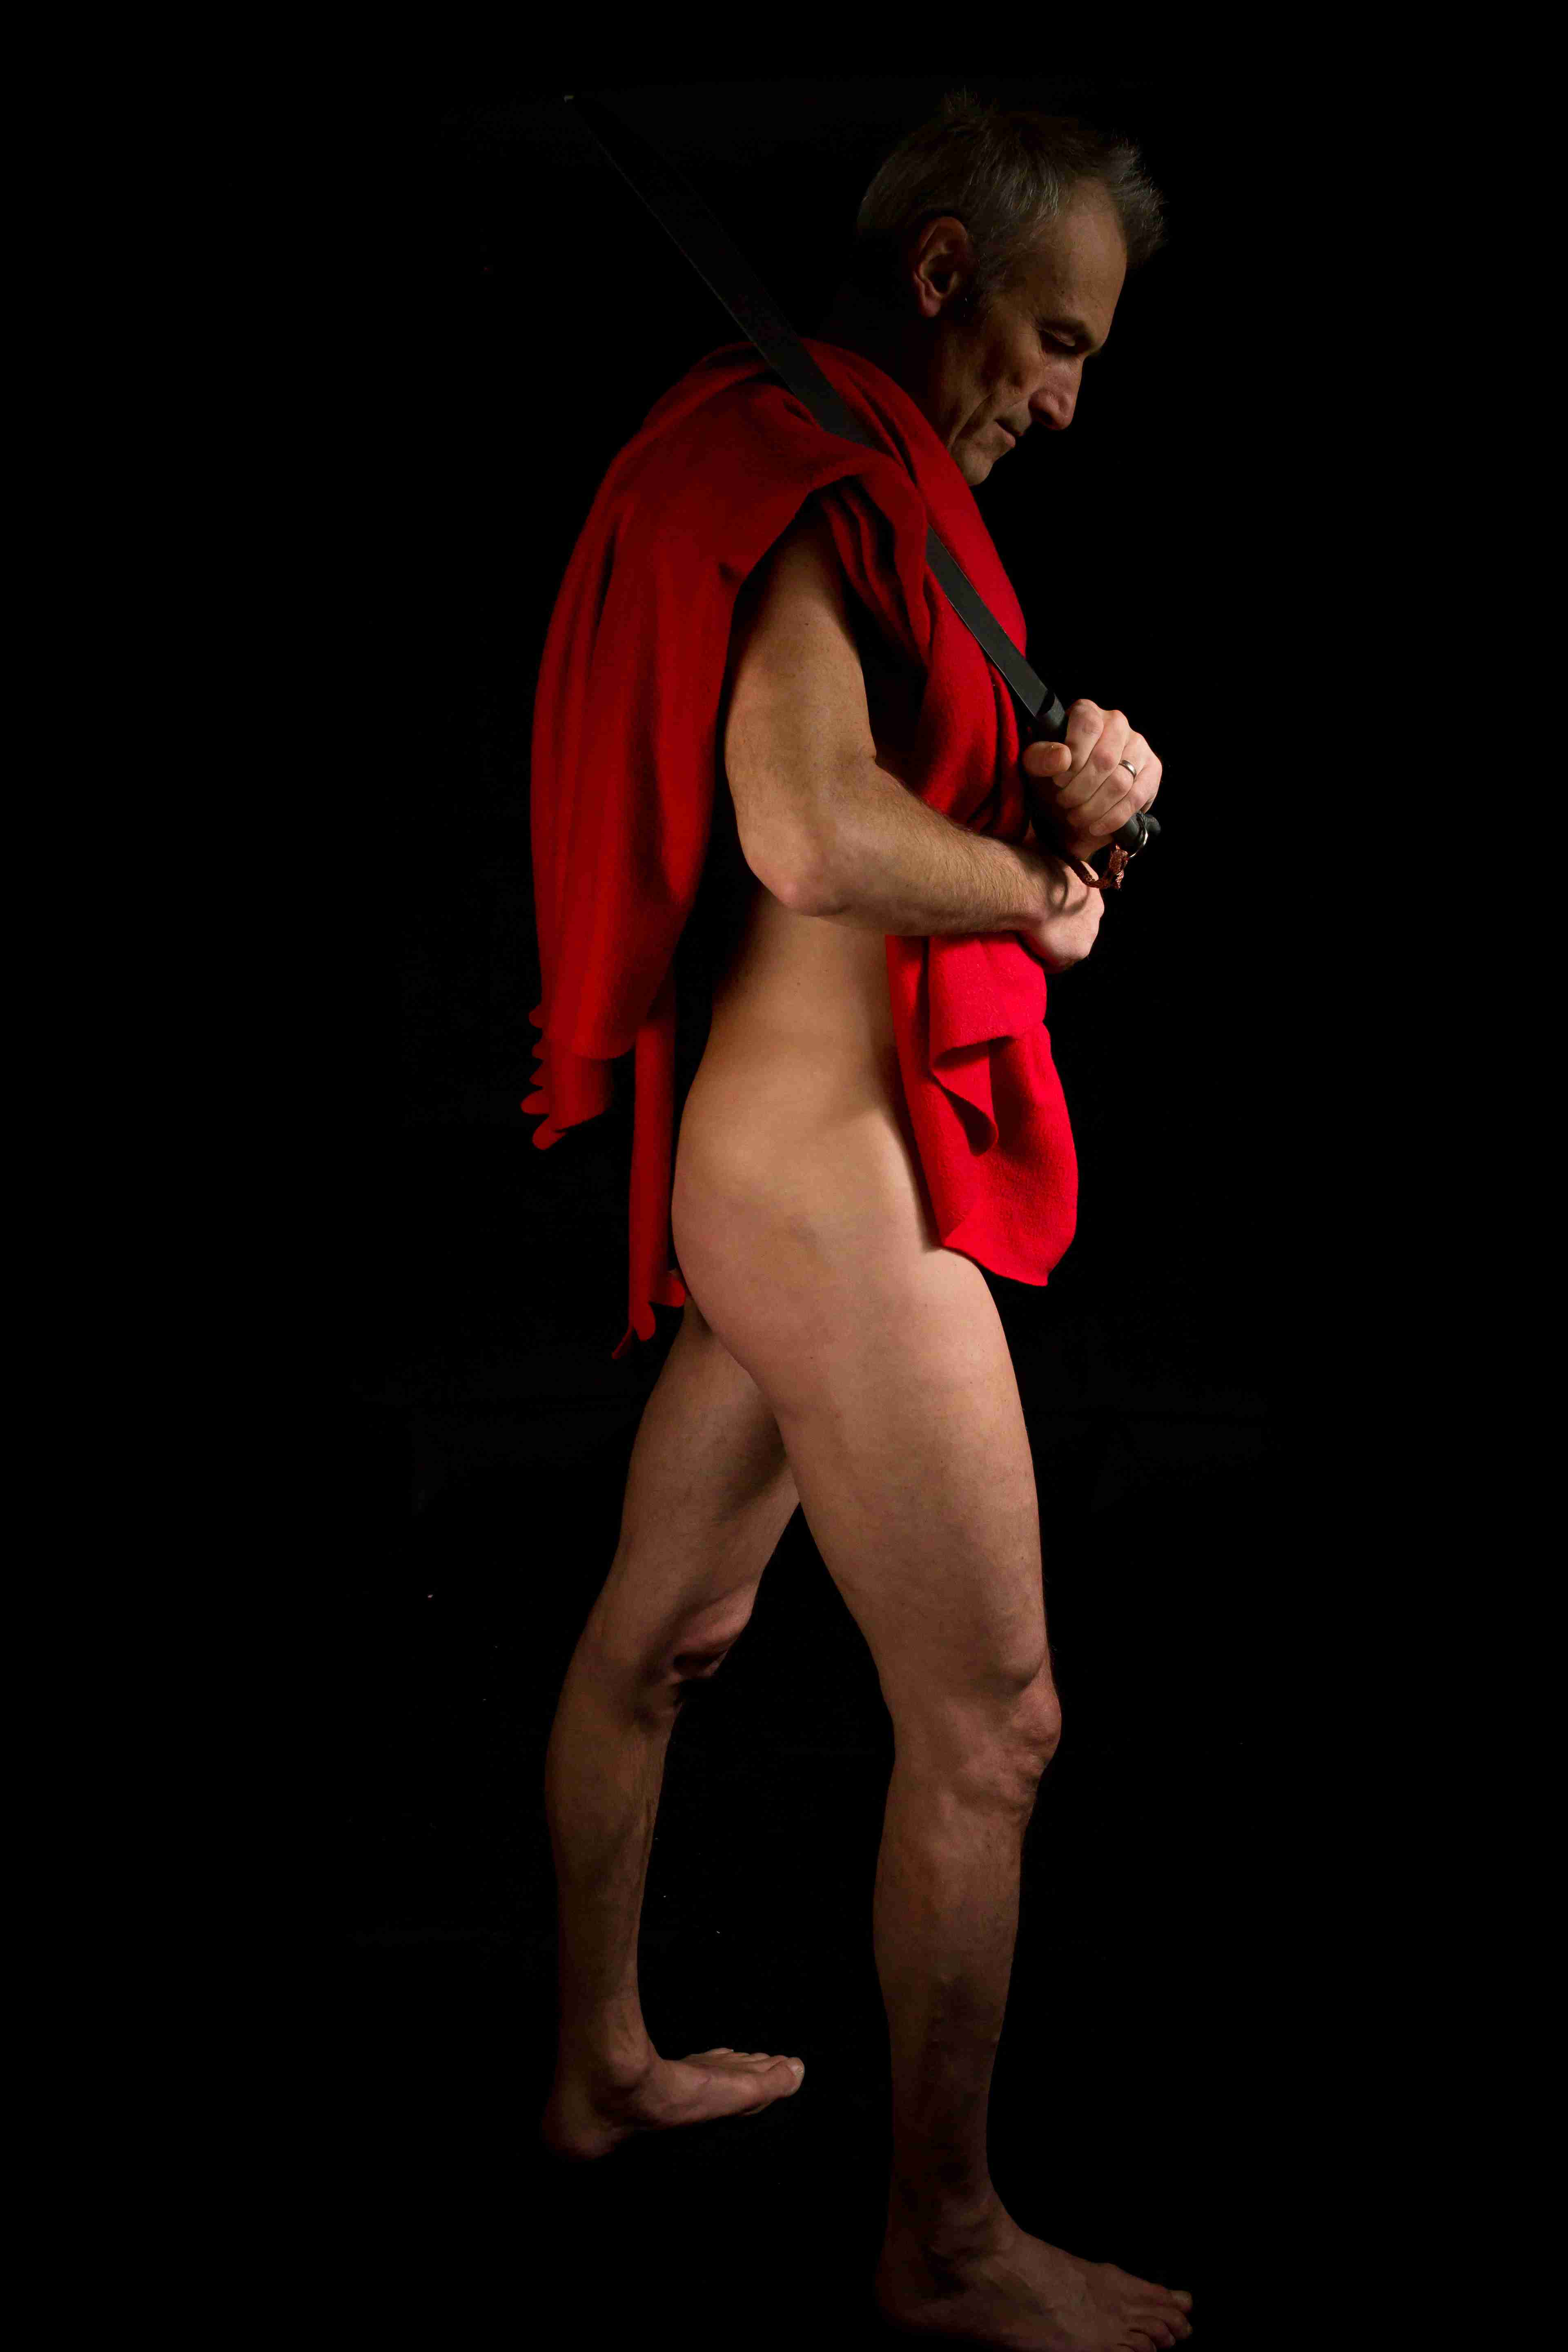 life model Julian, carrying a red coat and black belt for an artist to draw or sculpt